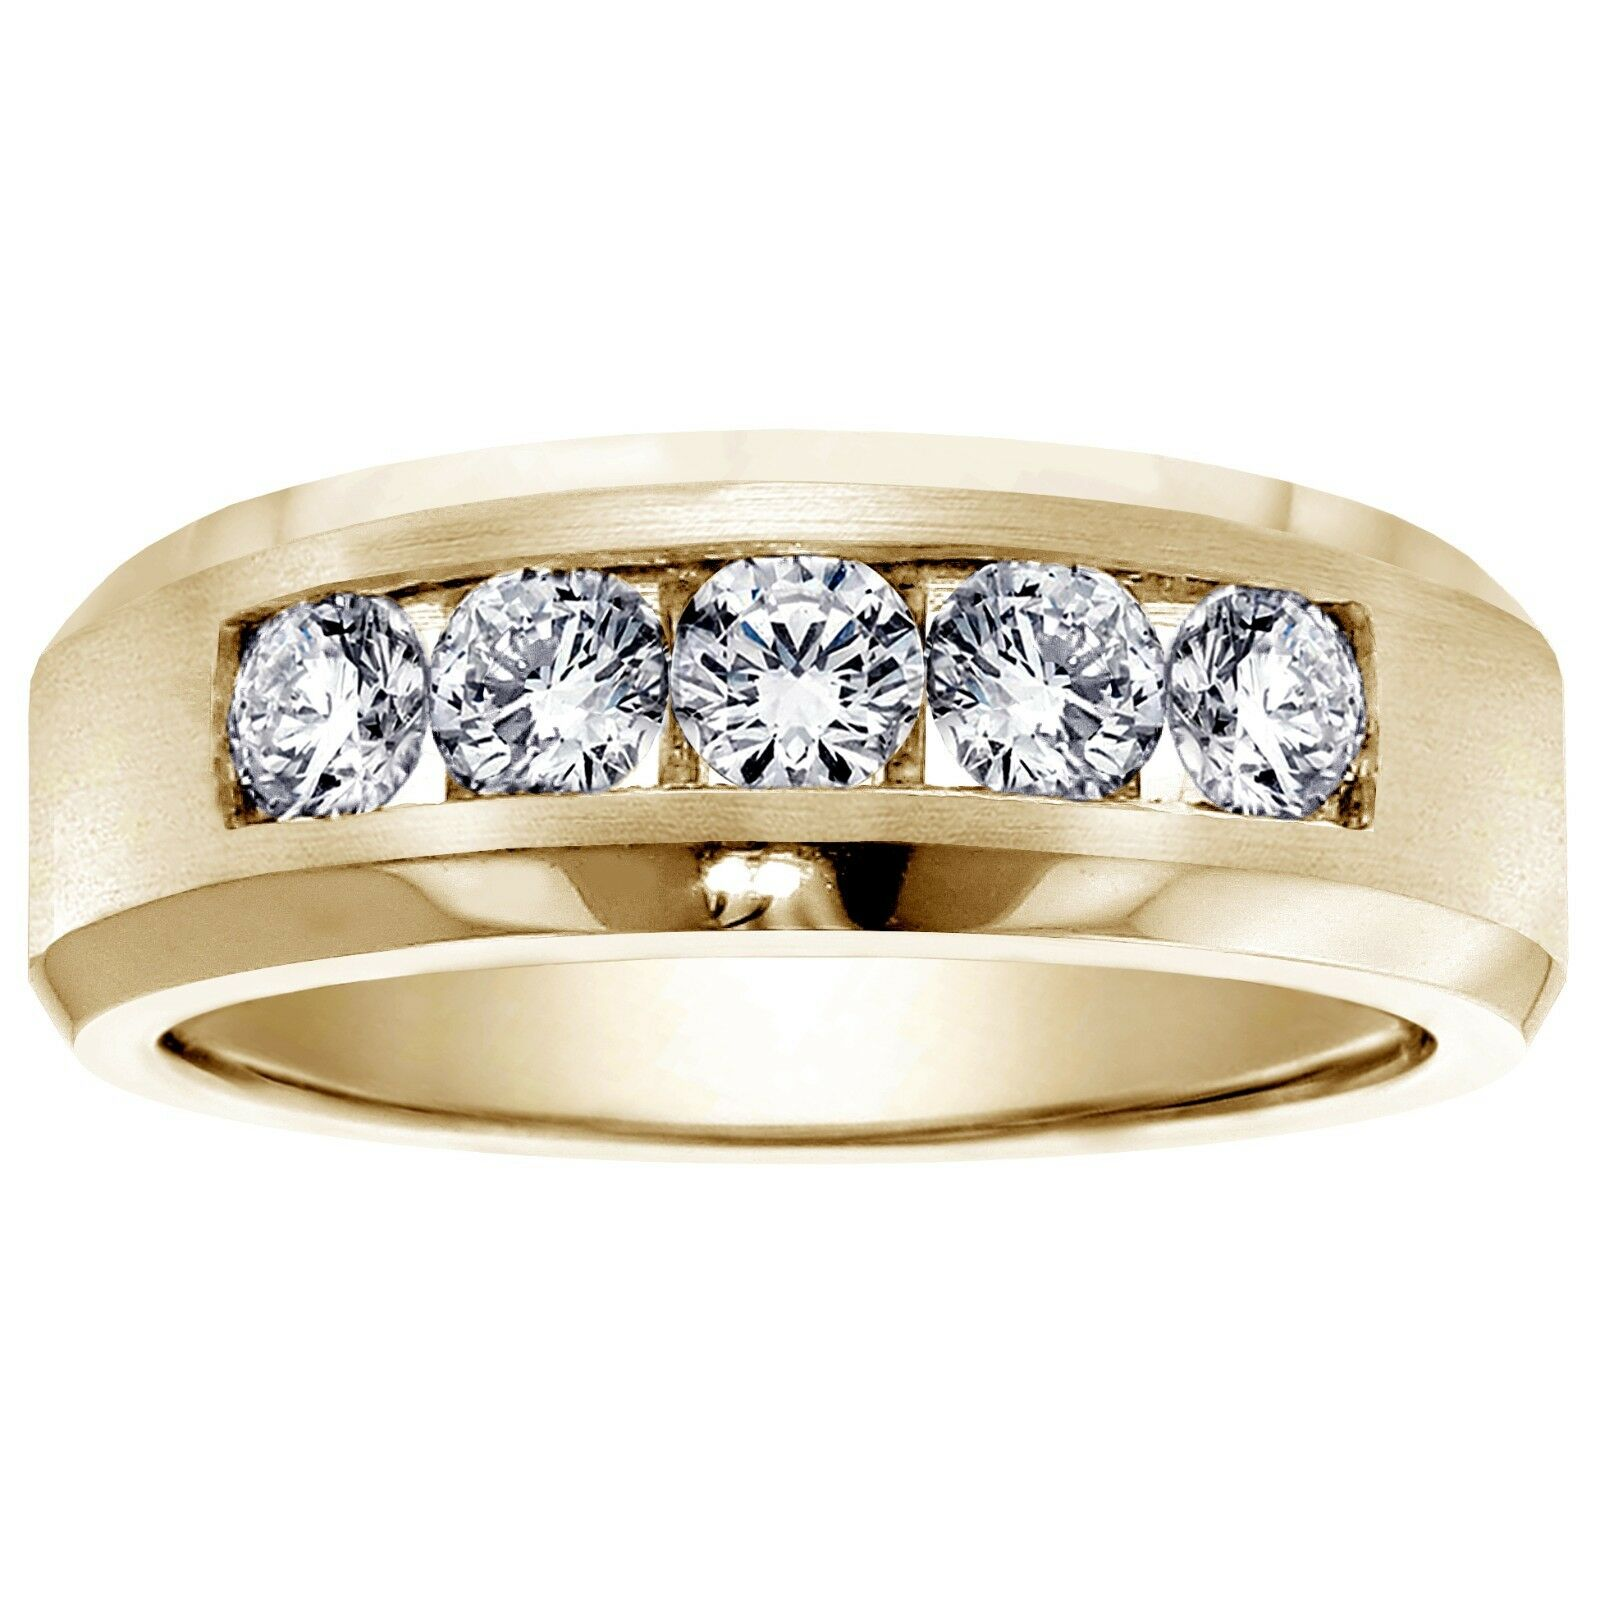 1.00 CT Channel Set Diamond Mens Wedding Ring in 14k Yellow Gold NEW! 2